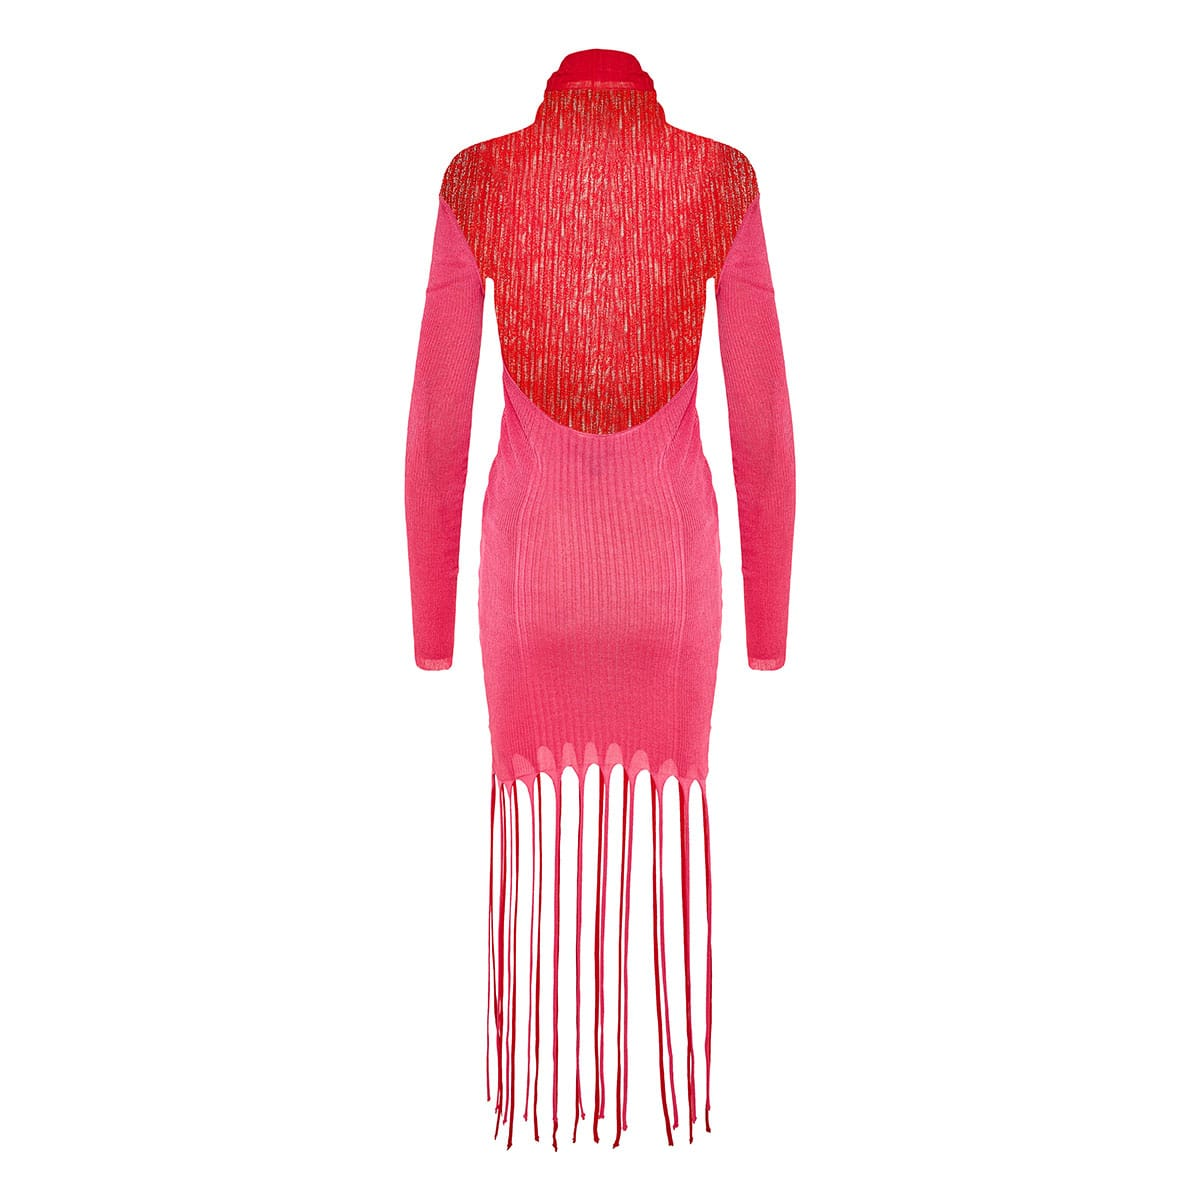 Fringed knitted top with open back